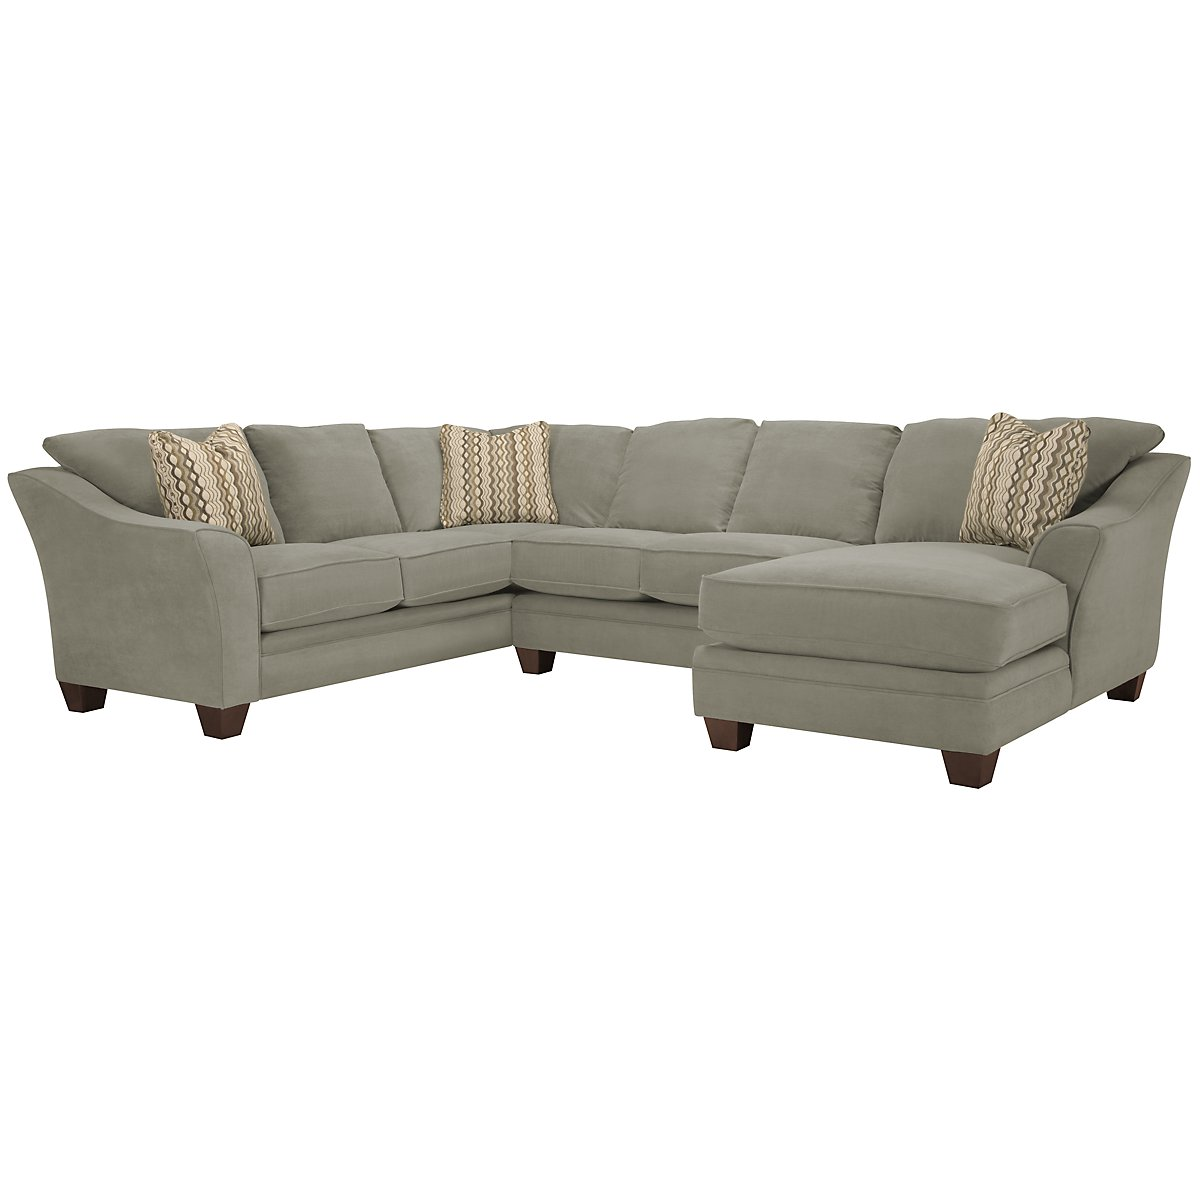 Grant2 Light Green Microfiber Right Chaise Sectional